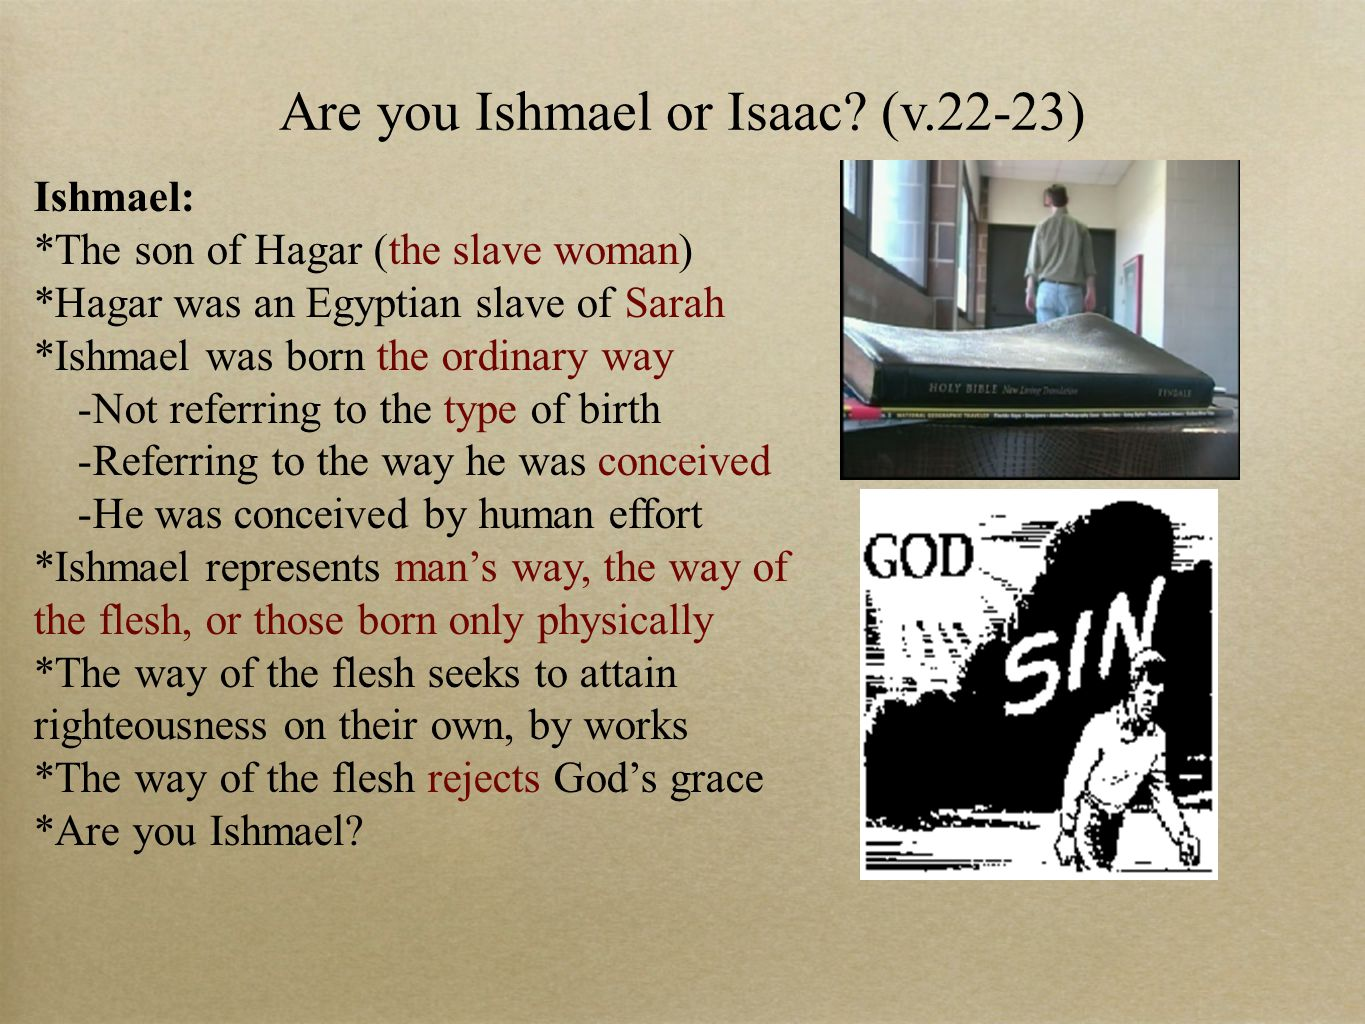 Are you Ishmael or Isaac? (v.22-23) Ishmael: *The son of Hagar (the slave woman) *Hagar was an Egyptian slave of Sarah *Ishmael was born the ordinary